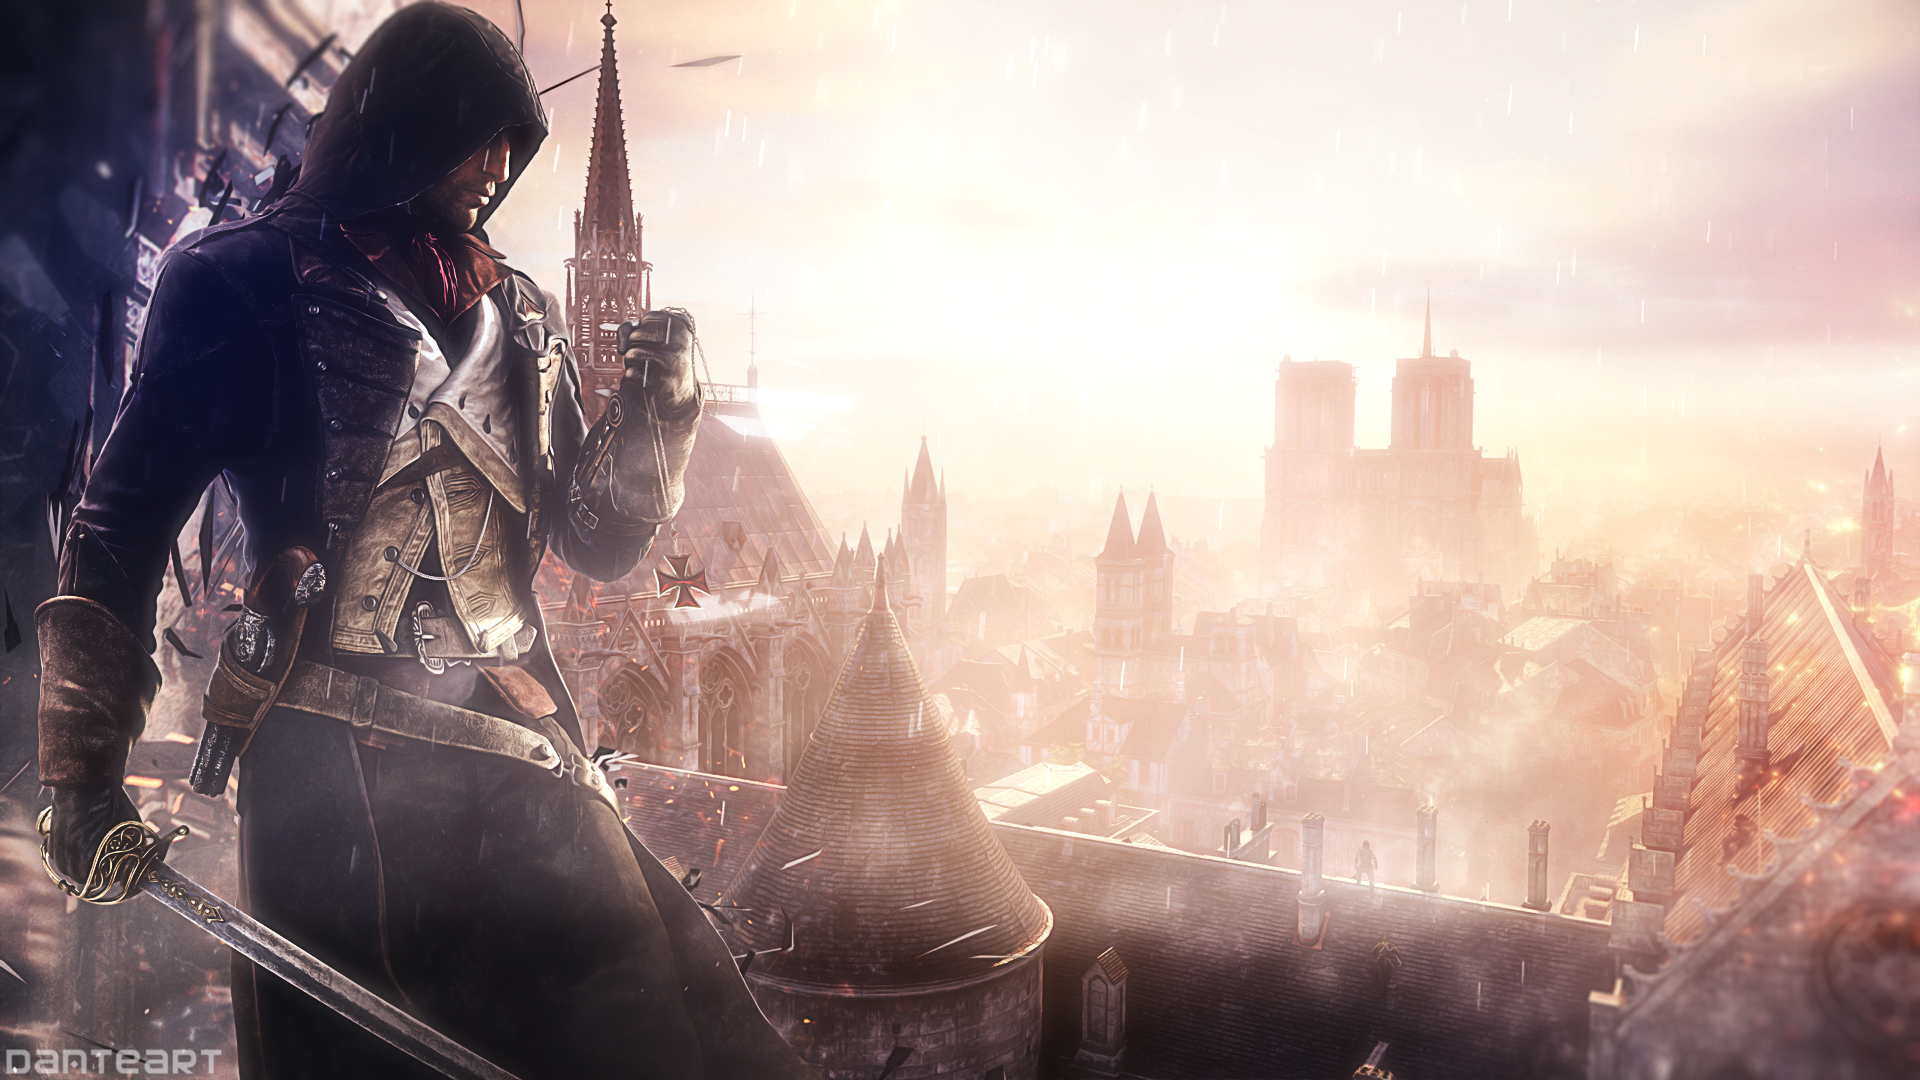 Assassins creed unity wallpapers driverlayer search engine - Assassin s creed unity wallpaper ...